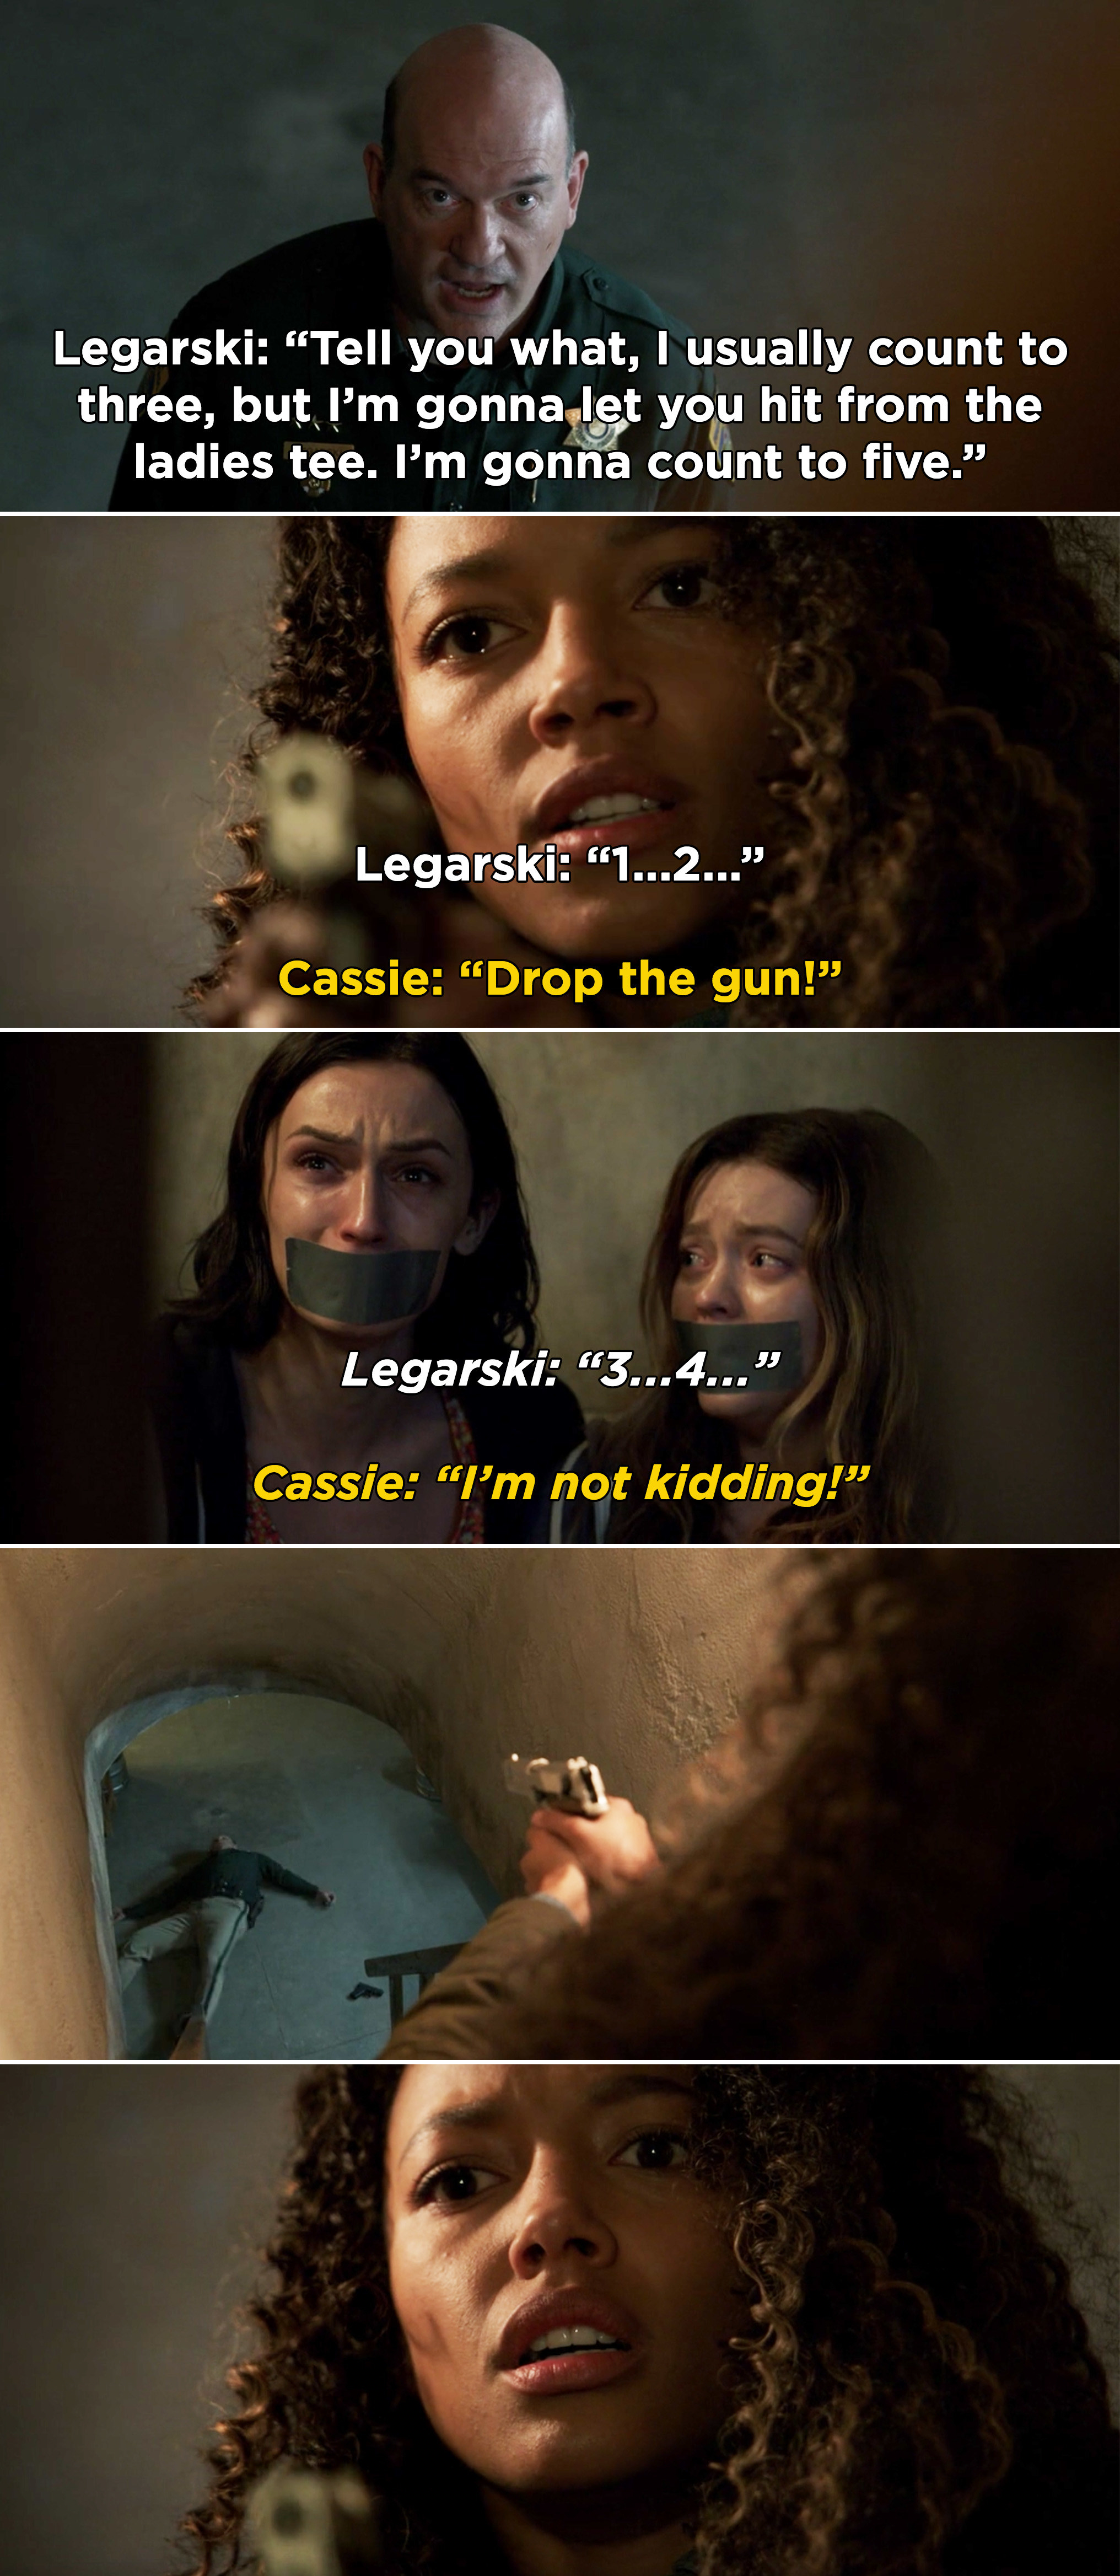 Legarski counting to five and Cassie shooting him while Jerrie and Grace sob